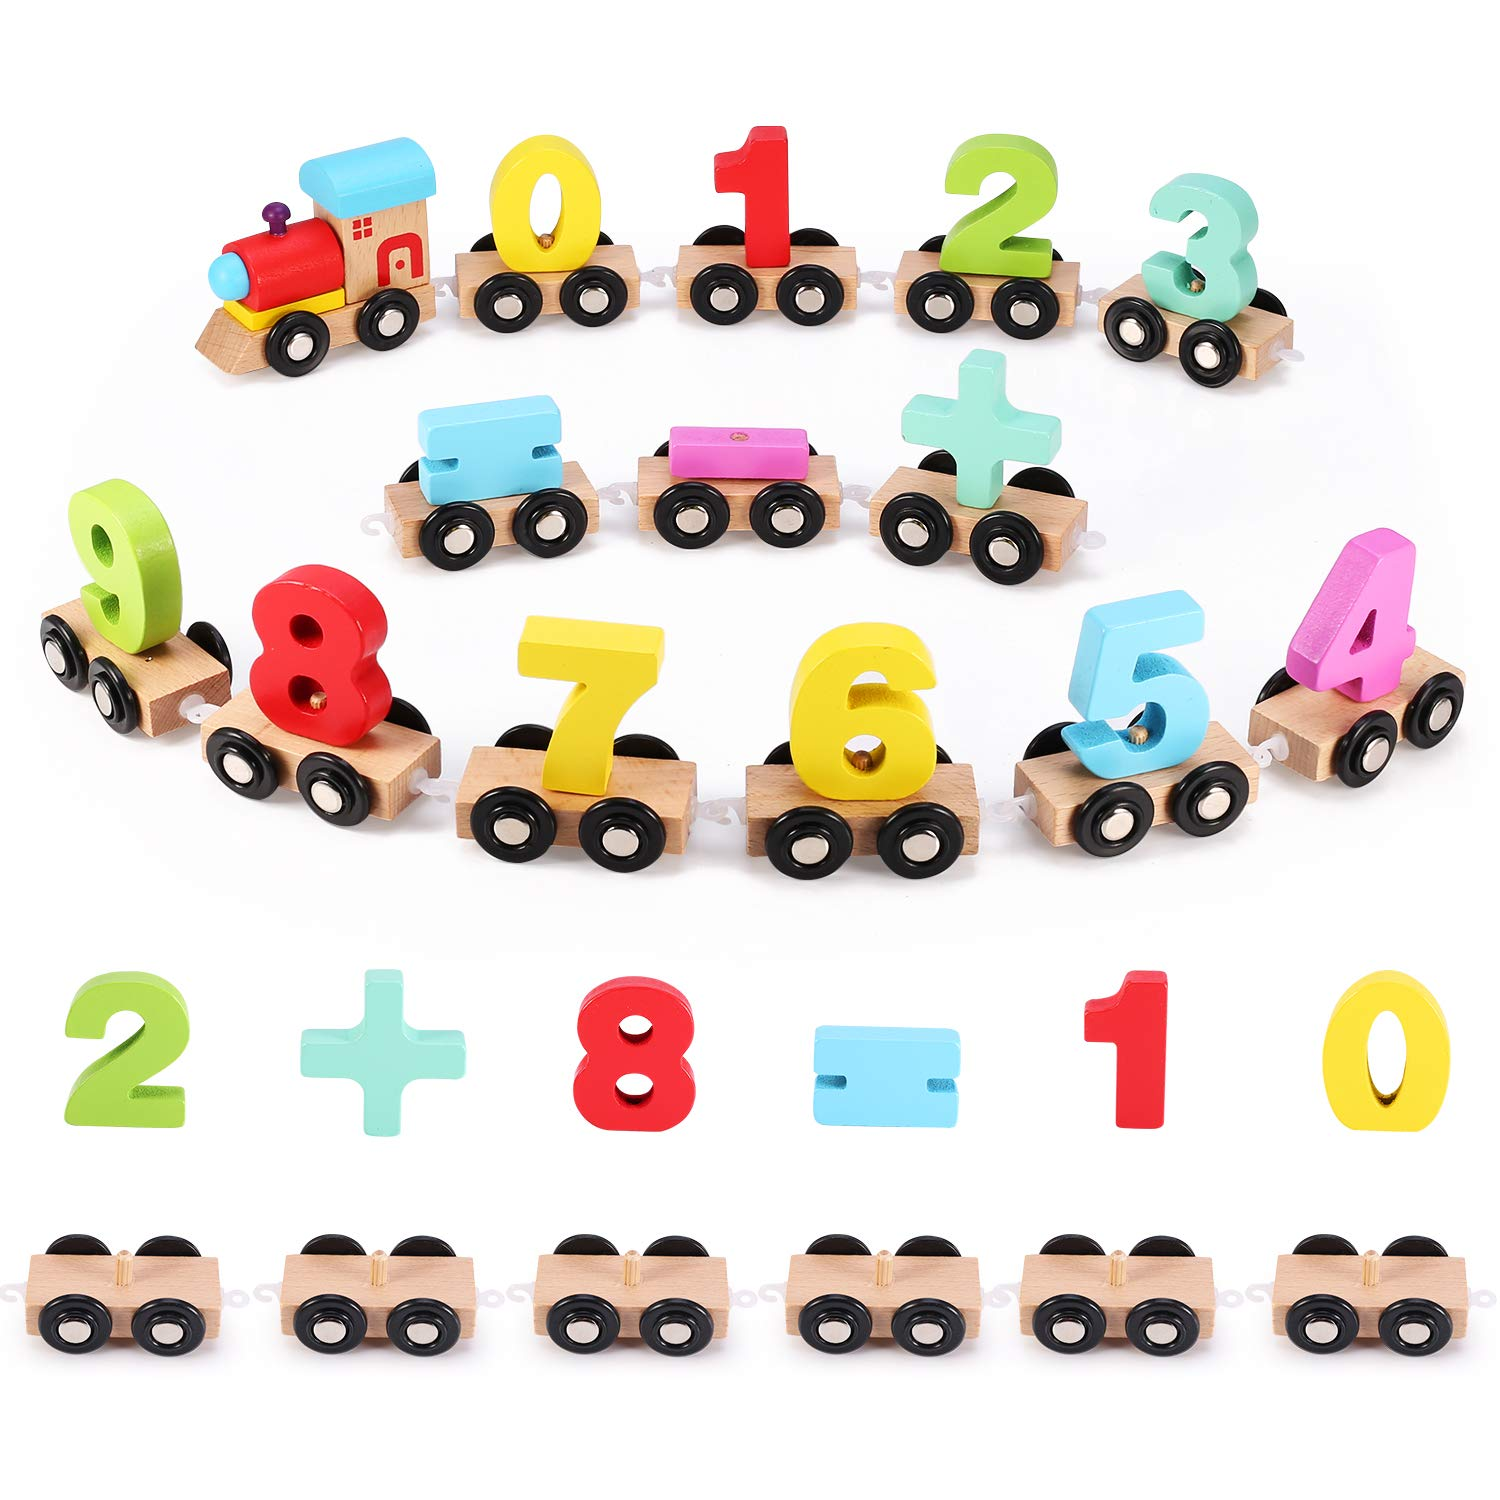 Wooden Number Train Set 31 PCS(14 Linking Cars, Great Gift for Girls and Boys - Best for 3, 4, 5 Year Olds and Up) Compatible for Wooden Tracks from All Major Brands-Preschool Toddler Educational Toy